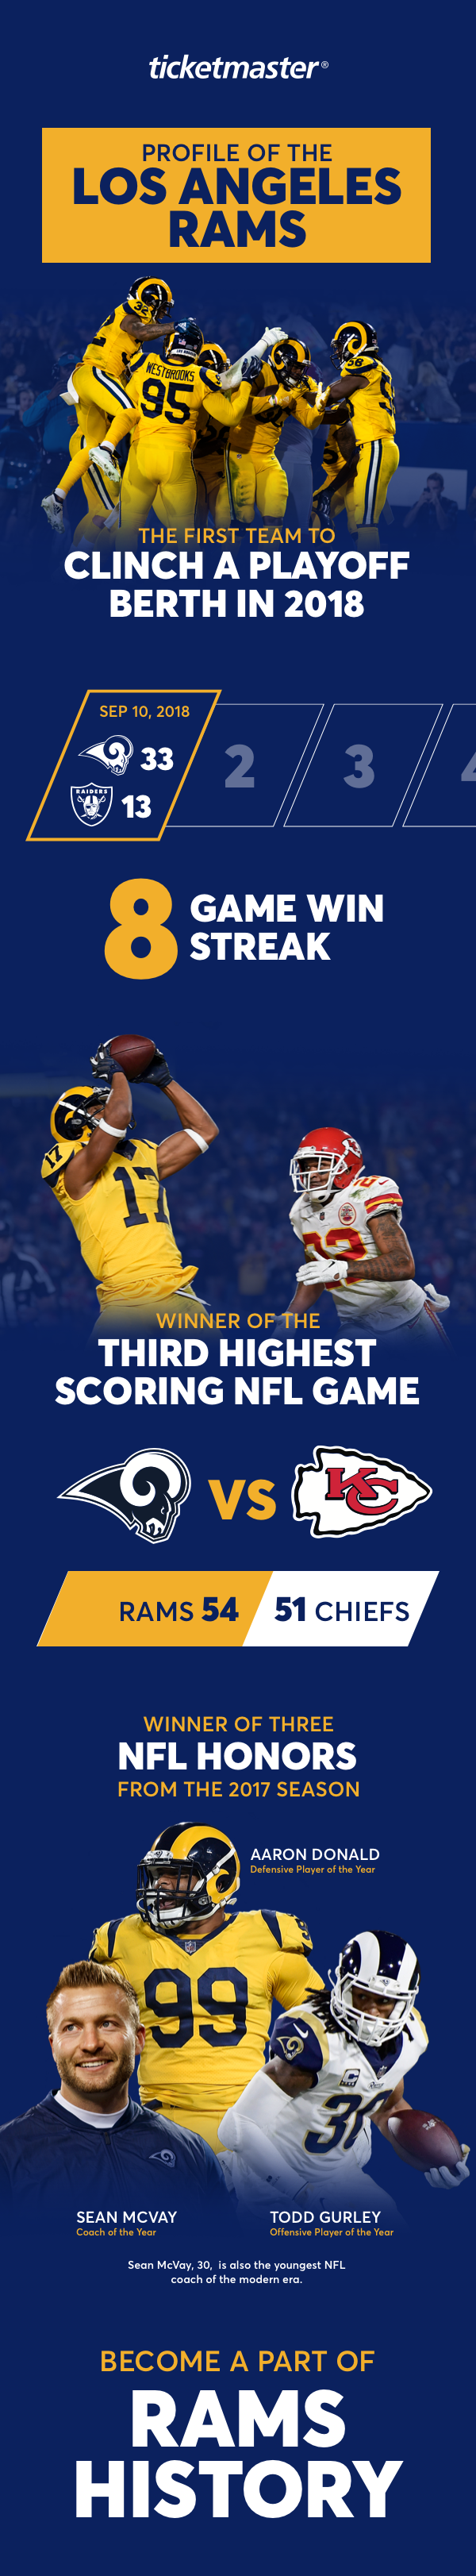 Los Angeles Rams Infographic.png